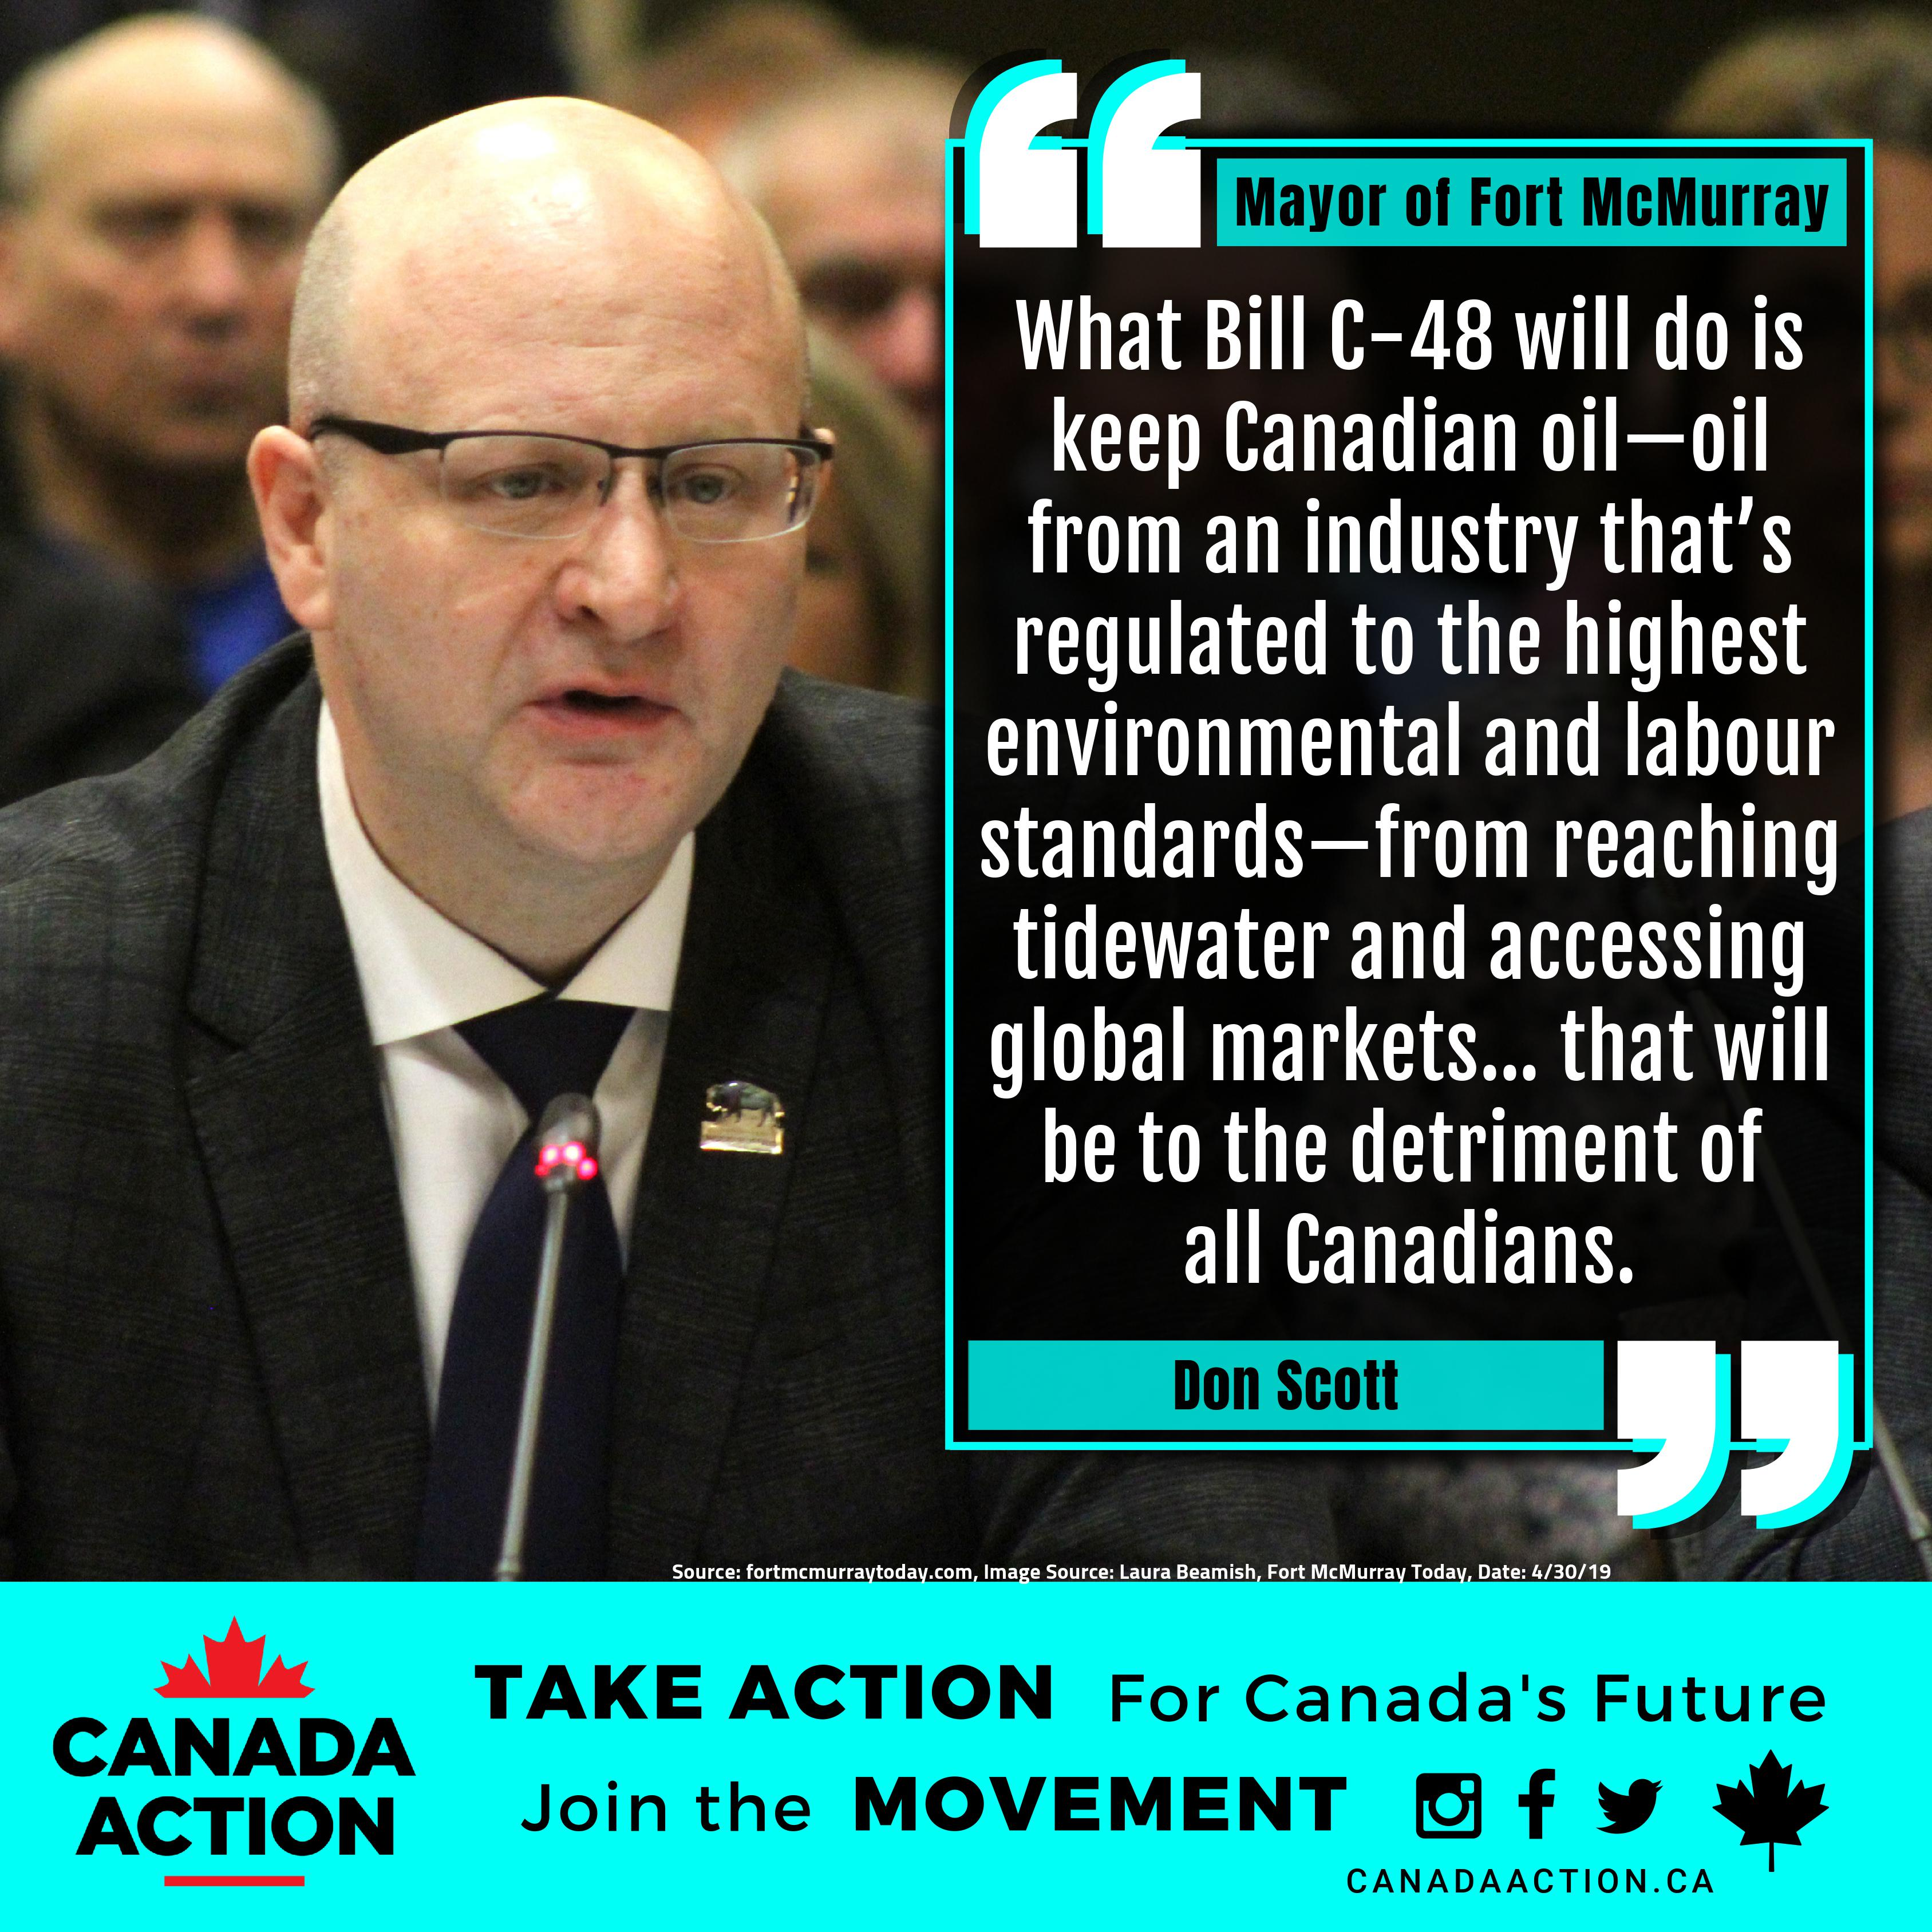 Mayor Fort McMurray Don Scott Opposes Bill C-48